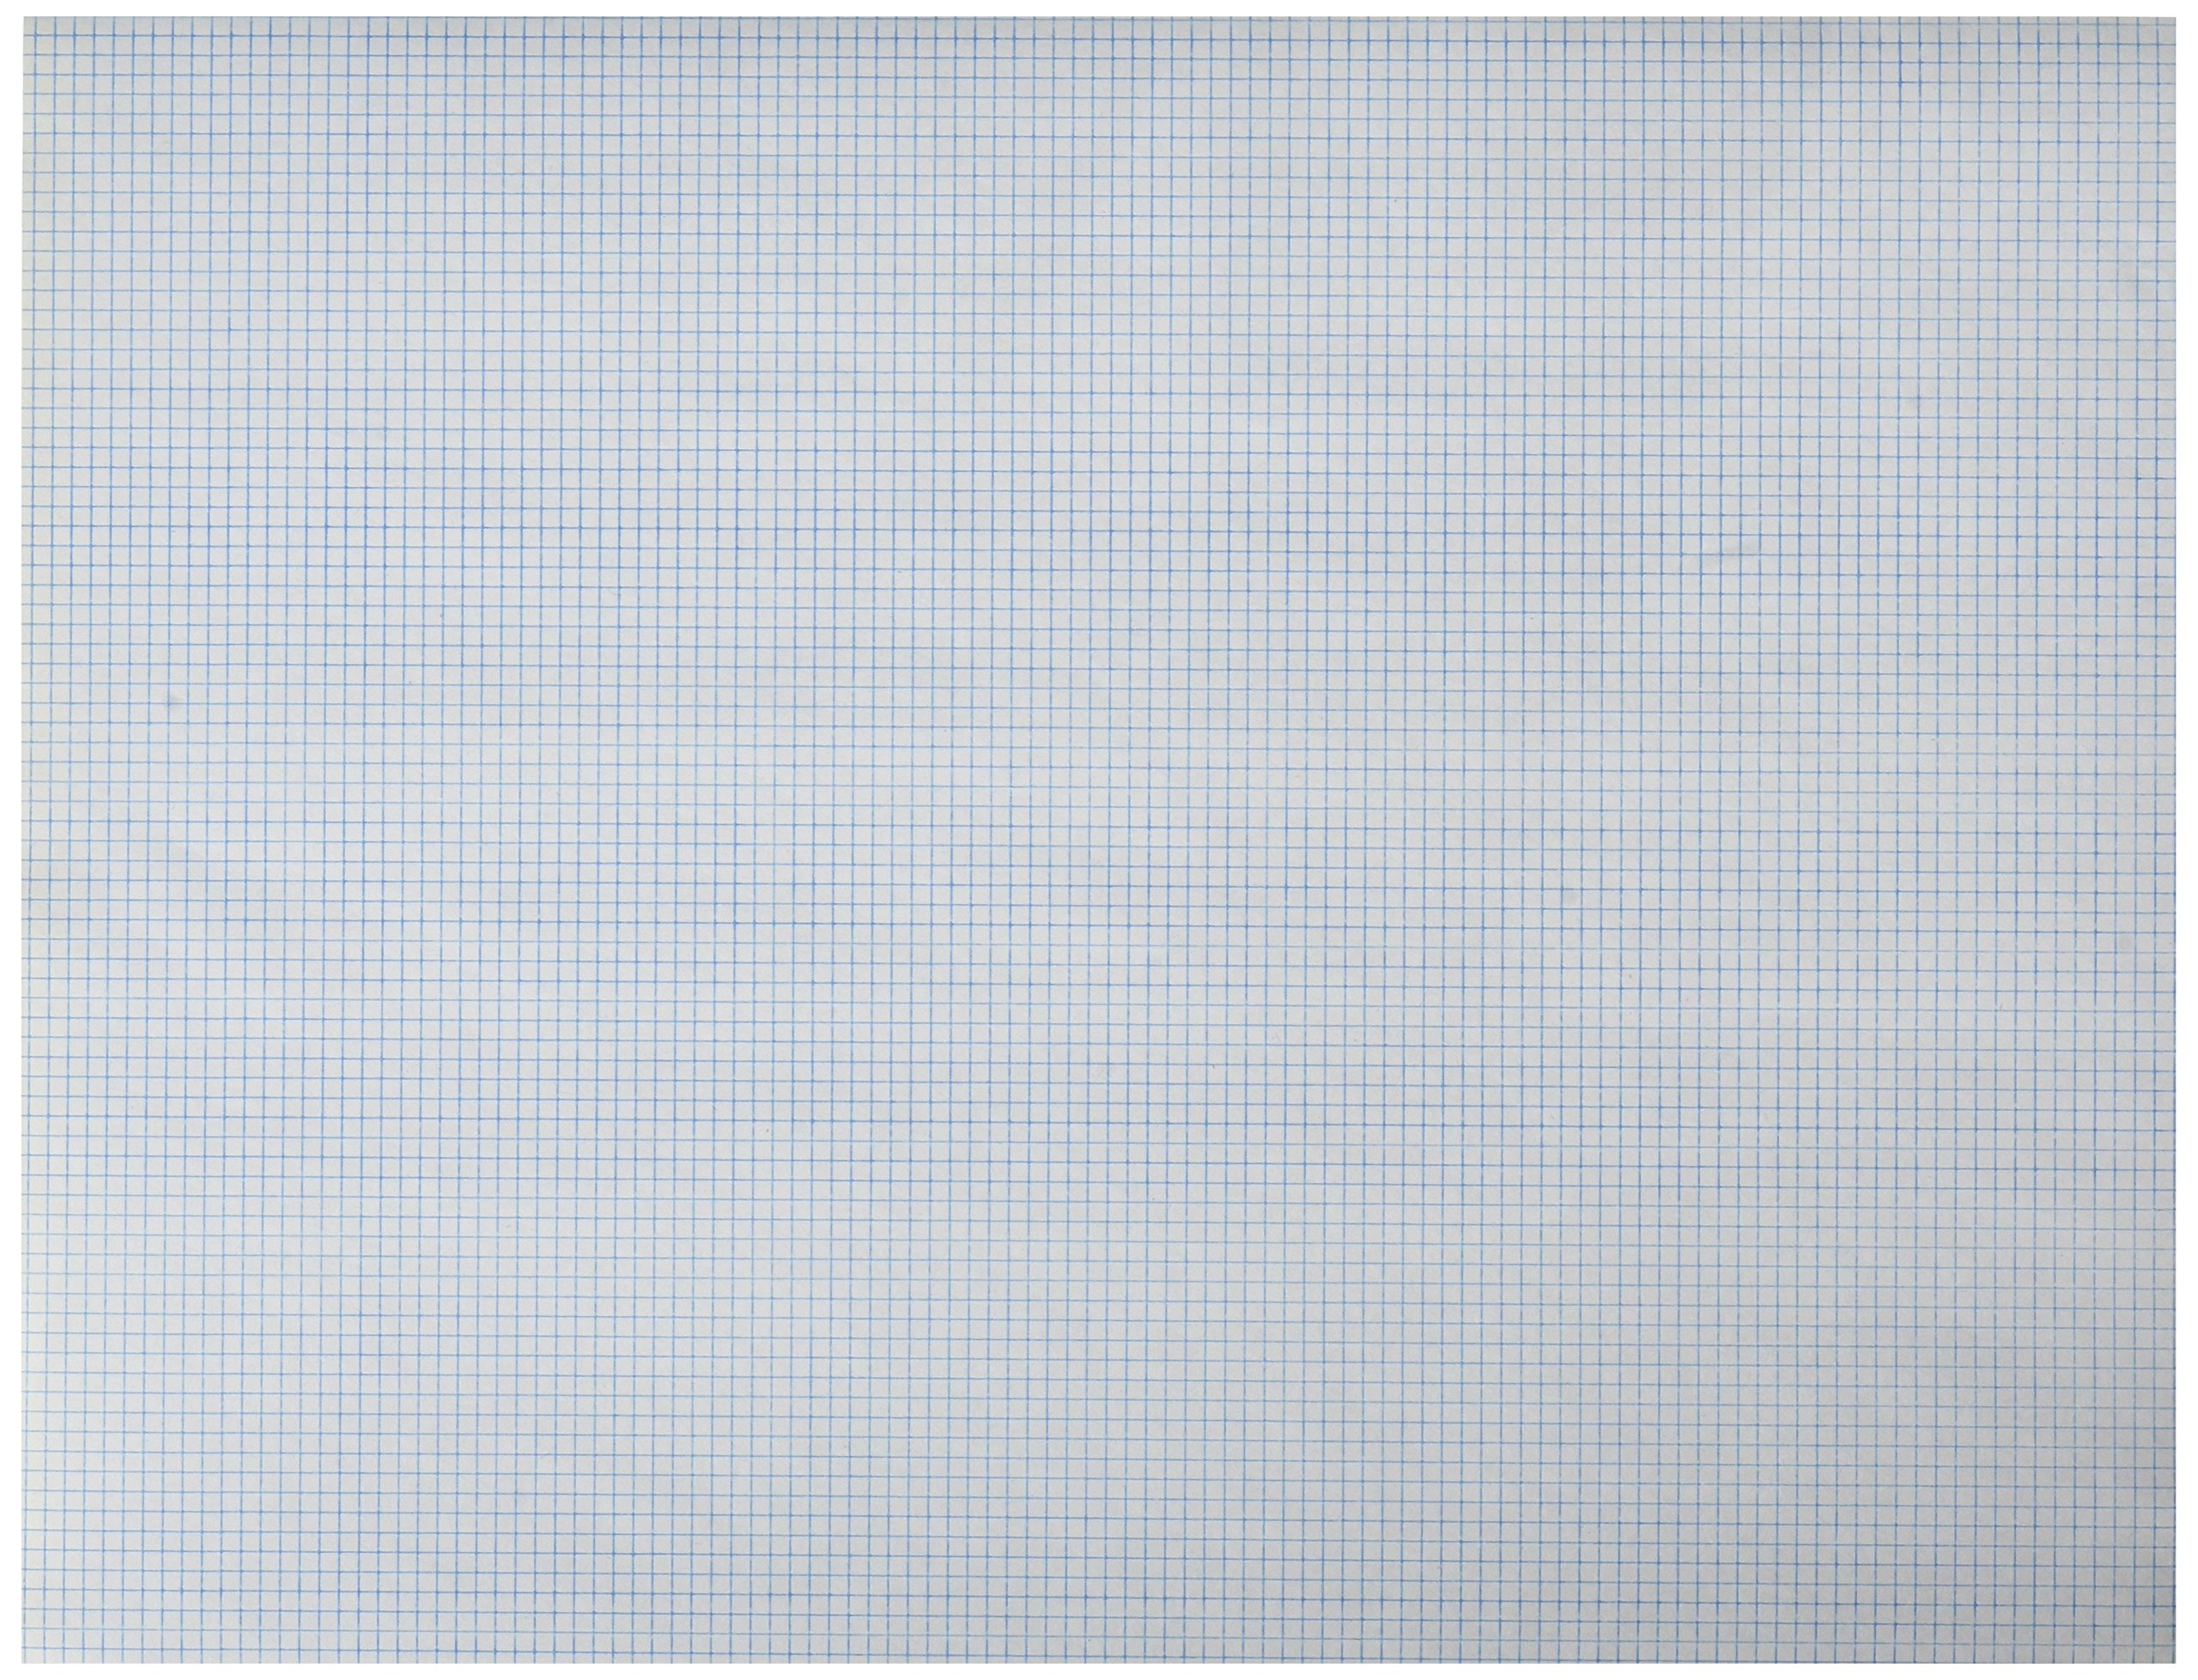 School Smart 16 pound Bond 1/10 in Ruled Graph Paper - 8 1/2 x 11 inches - Pack of 500 - White